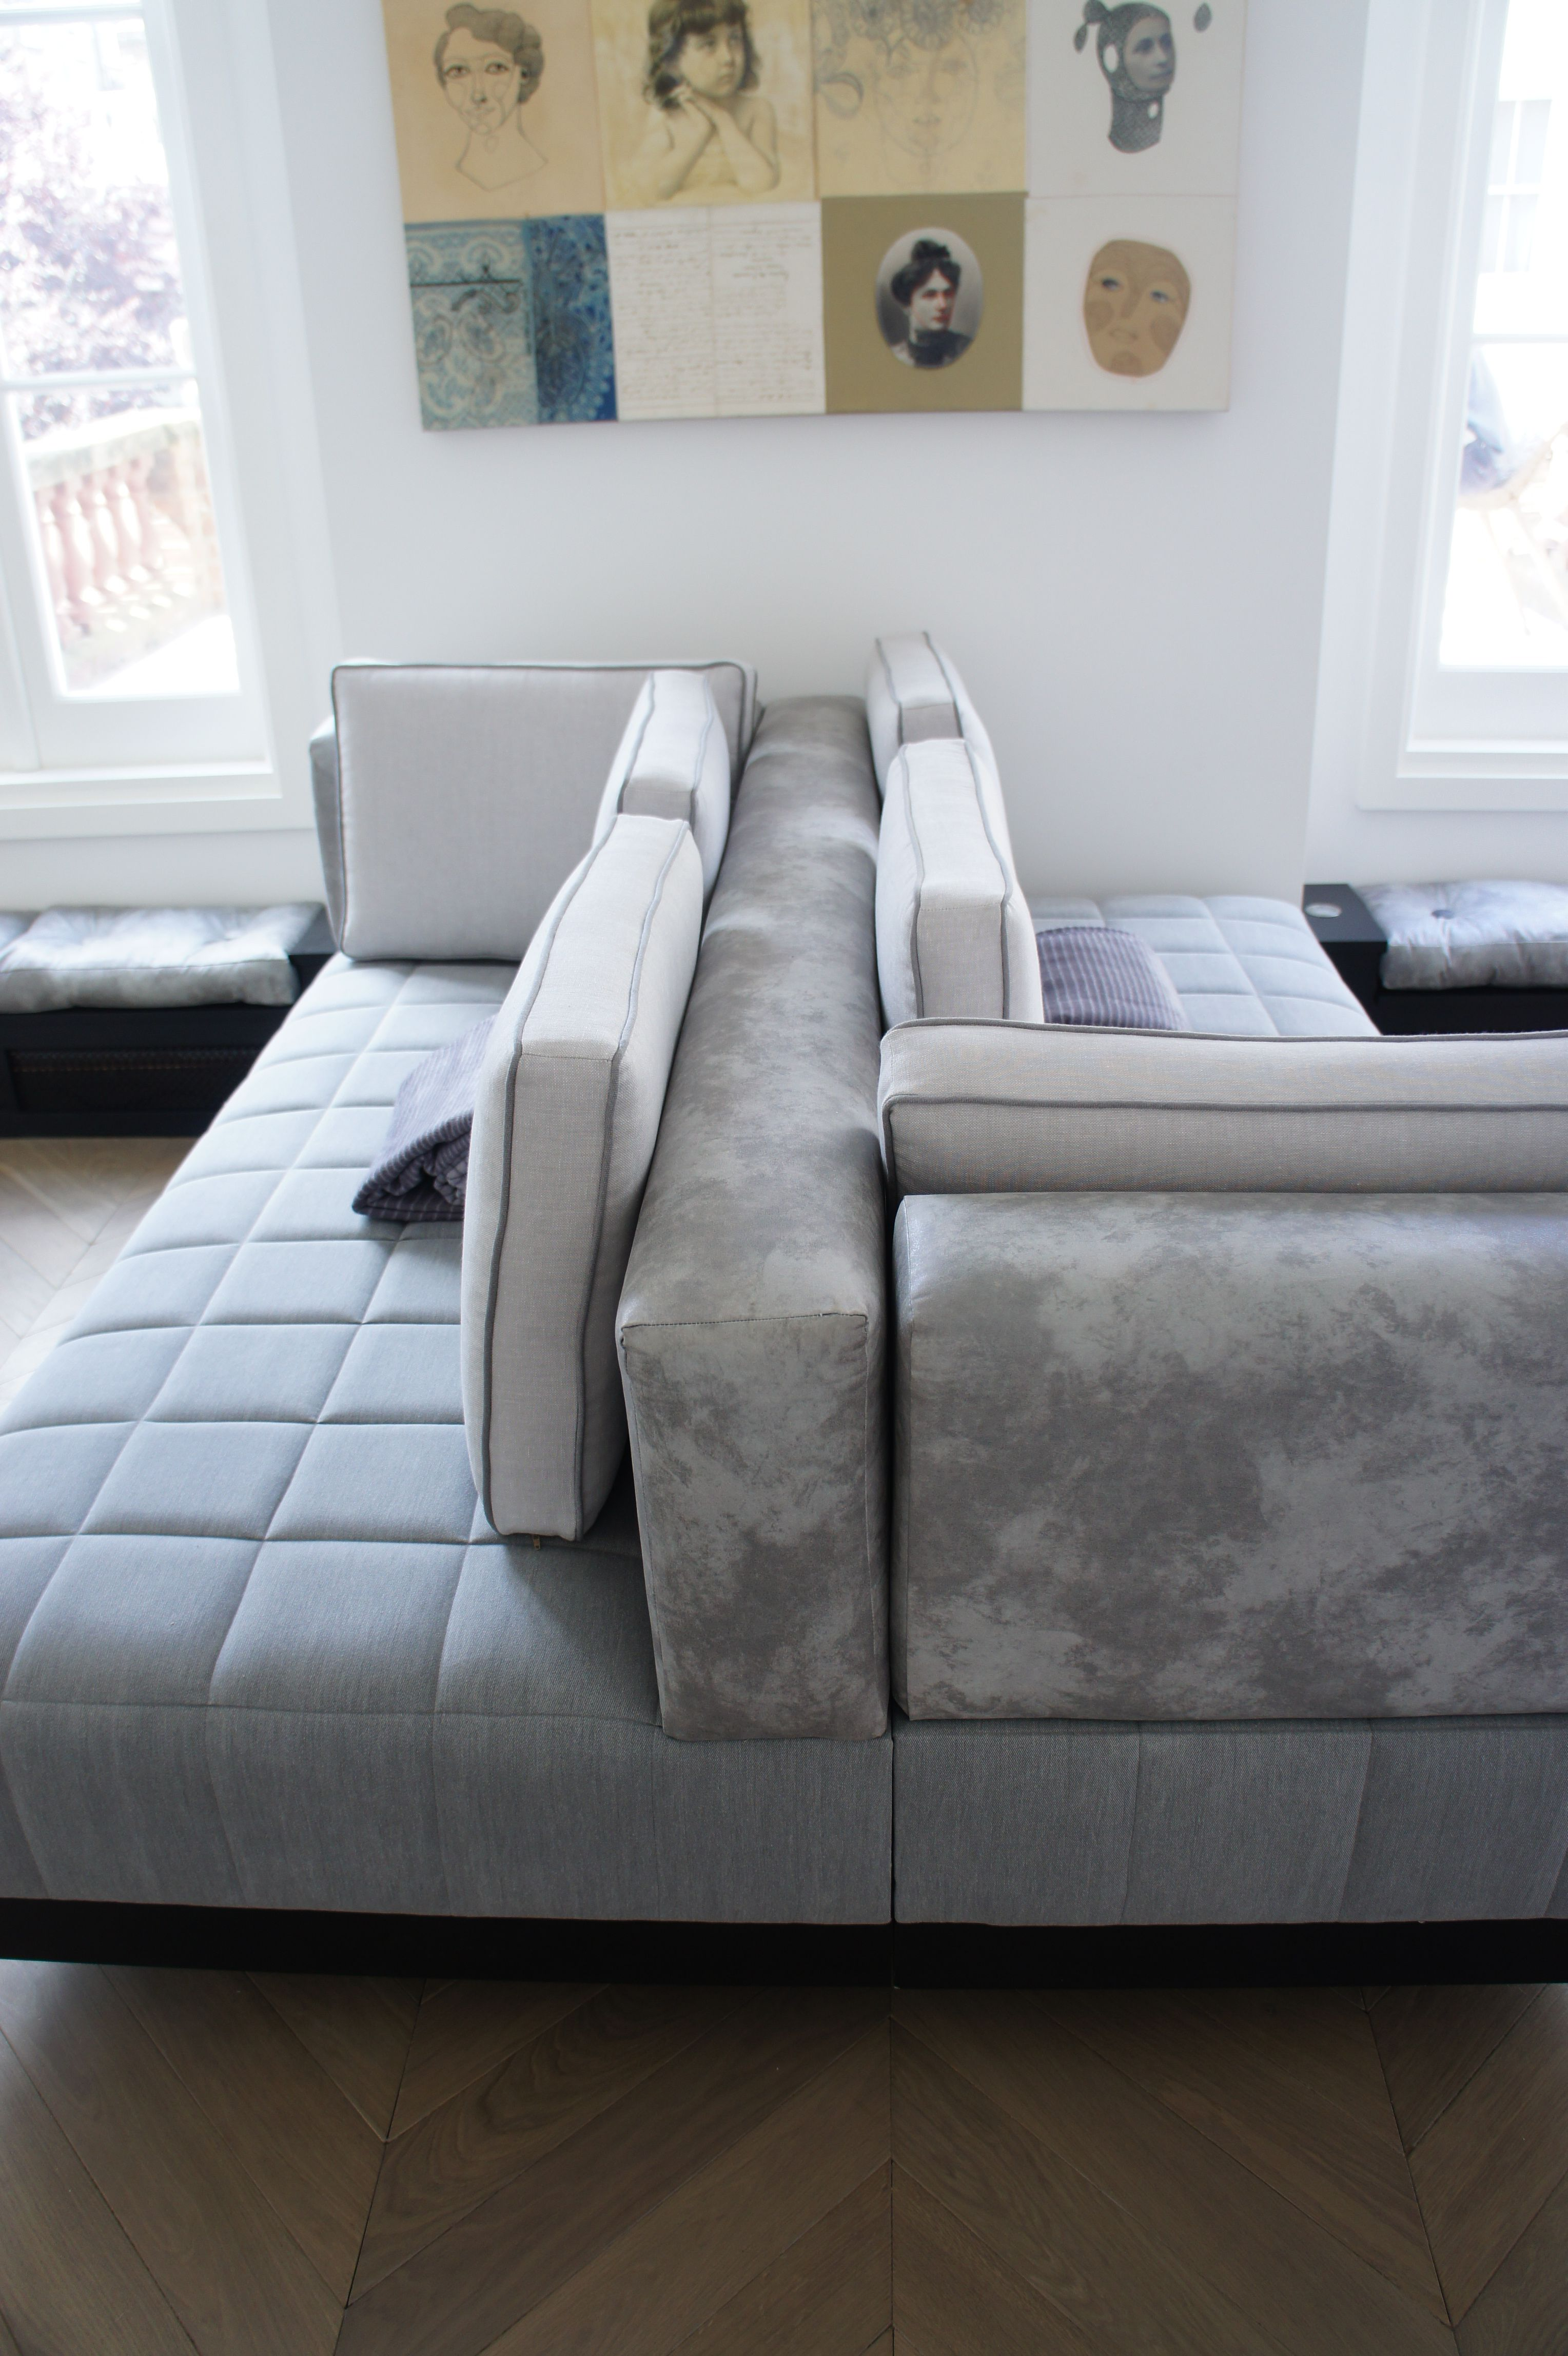 amazing double sided sofa design for inspiring interior decor: Amazing Living Room Decor Using Double Sided Sofa Ideas